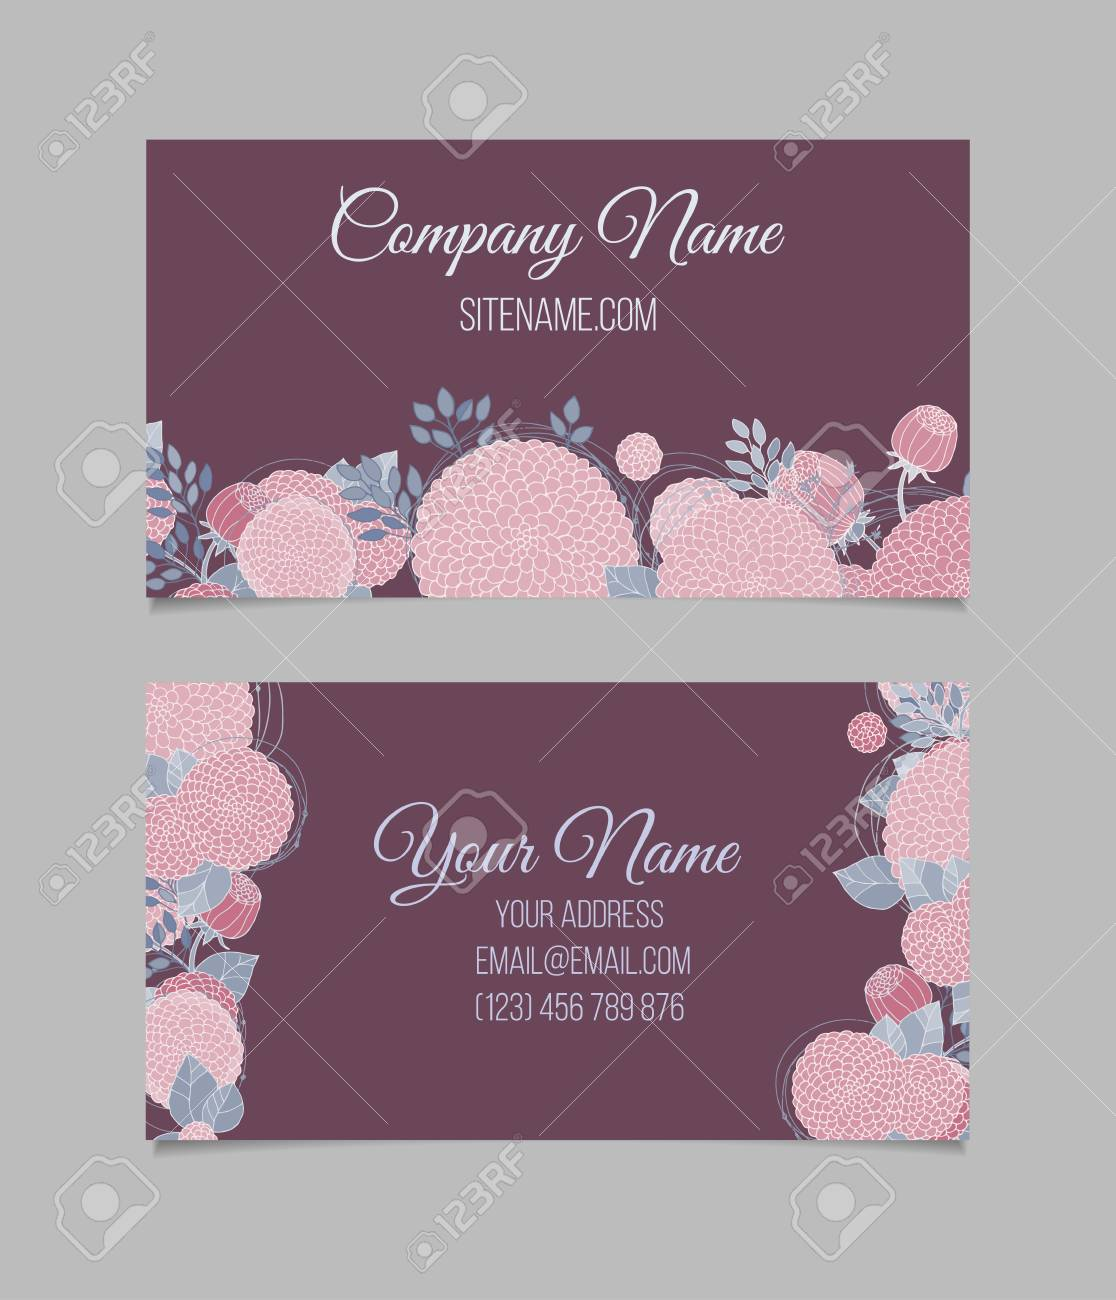 Double Sided Floral Vintage Business Card With Abstract Pink Flowers On Dark Background Stock